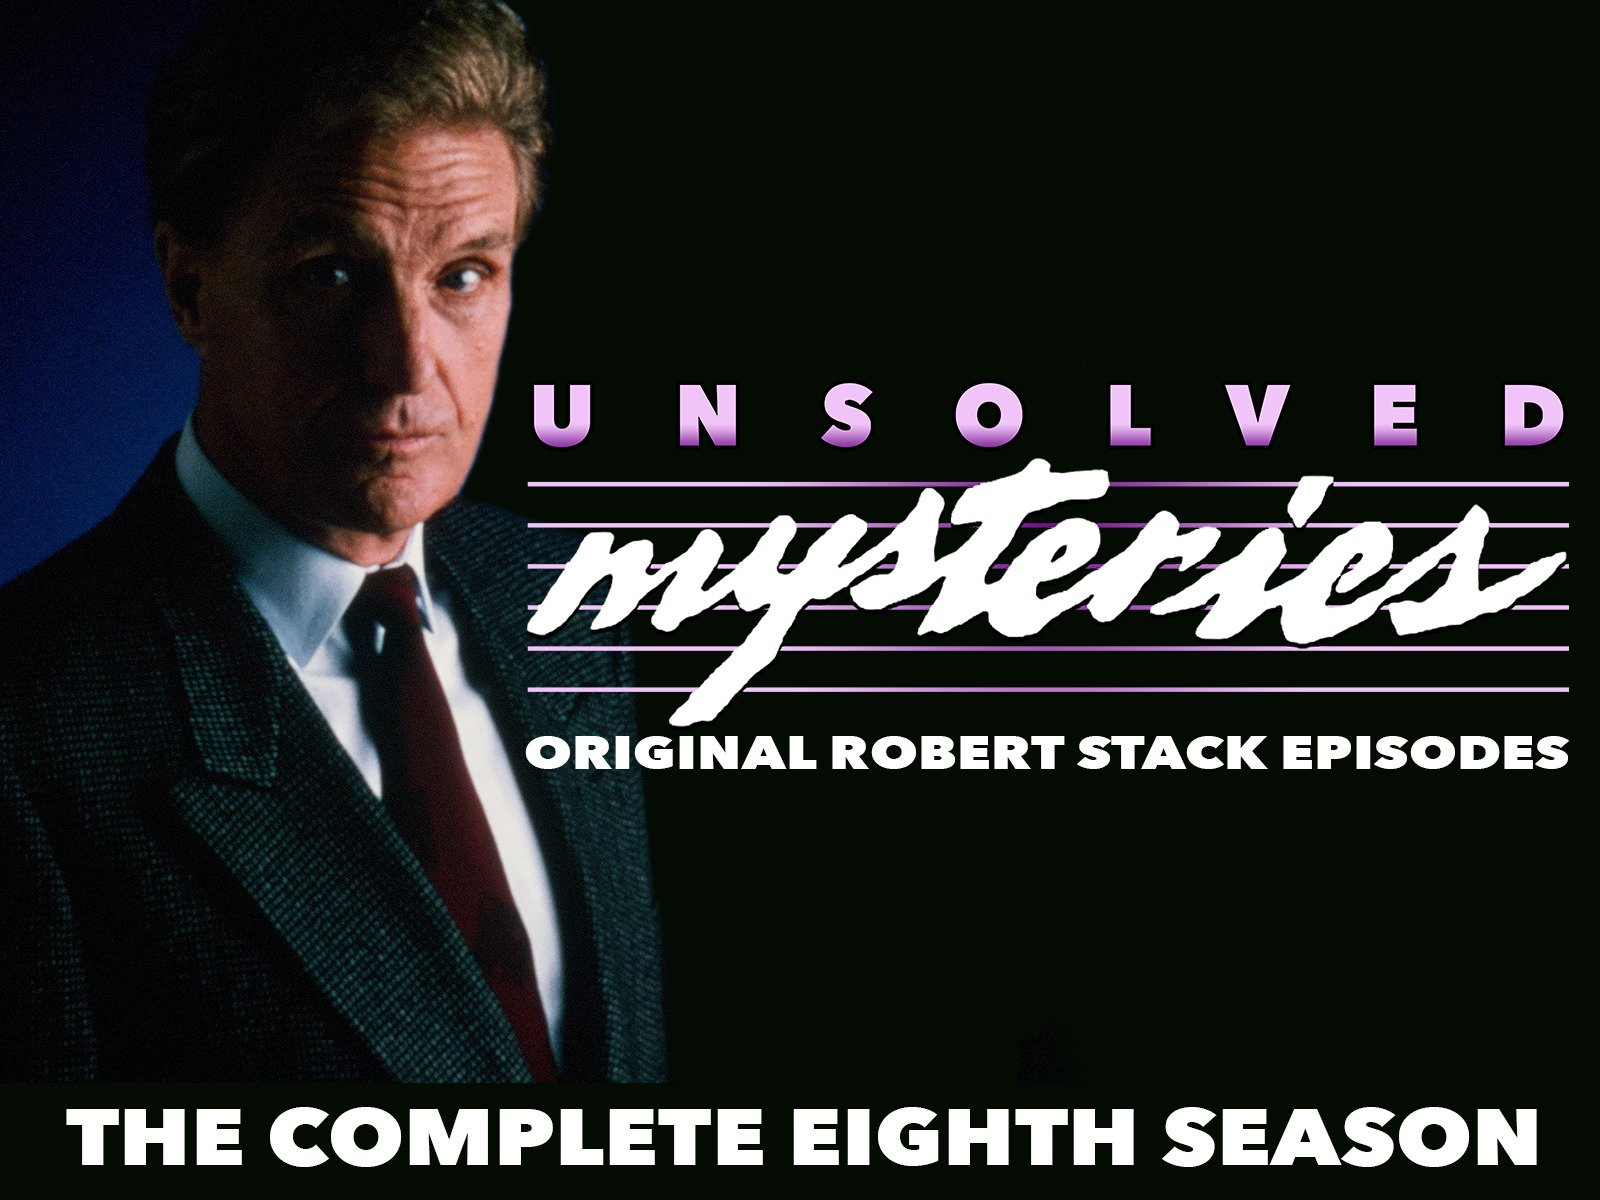 Unsolved Mysteries: Original Robert Stack Episodes - Season 8